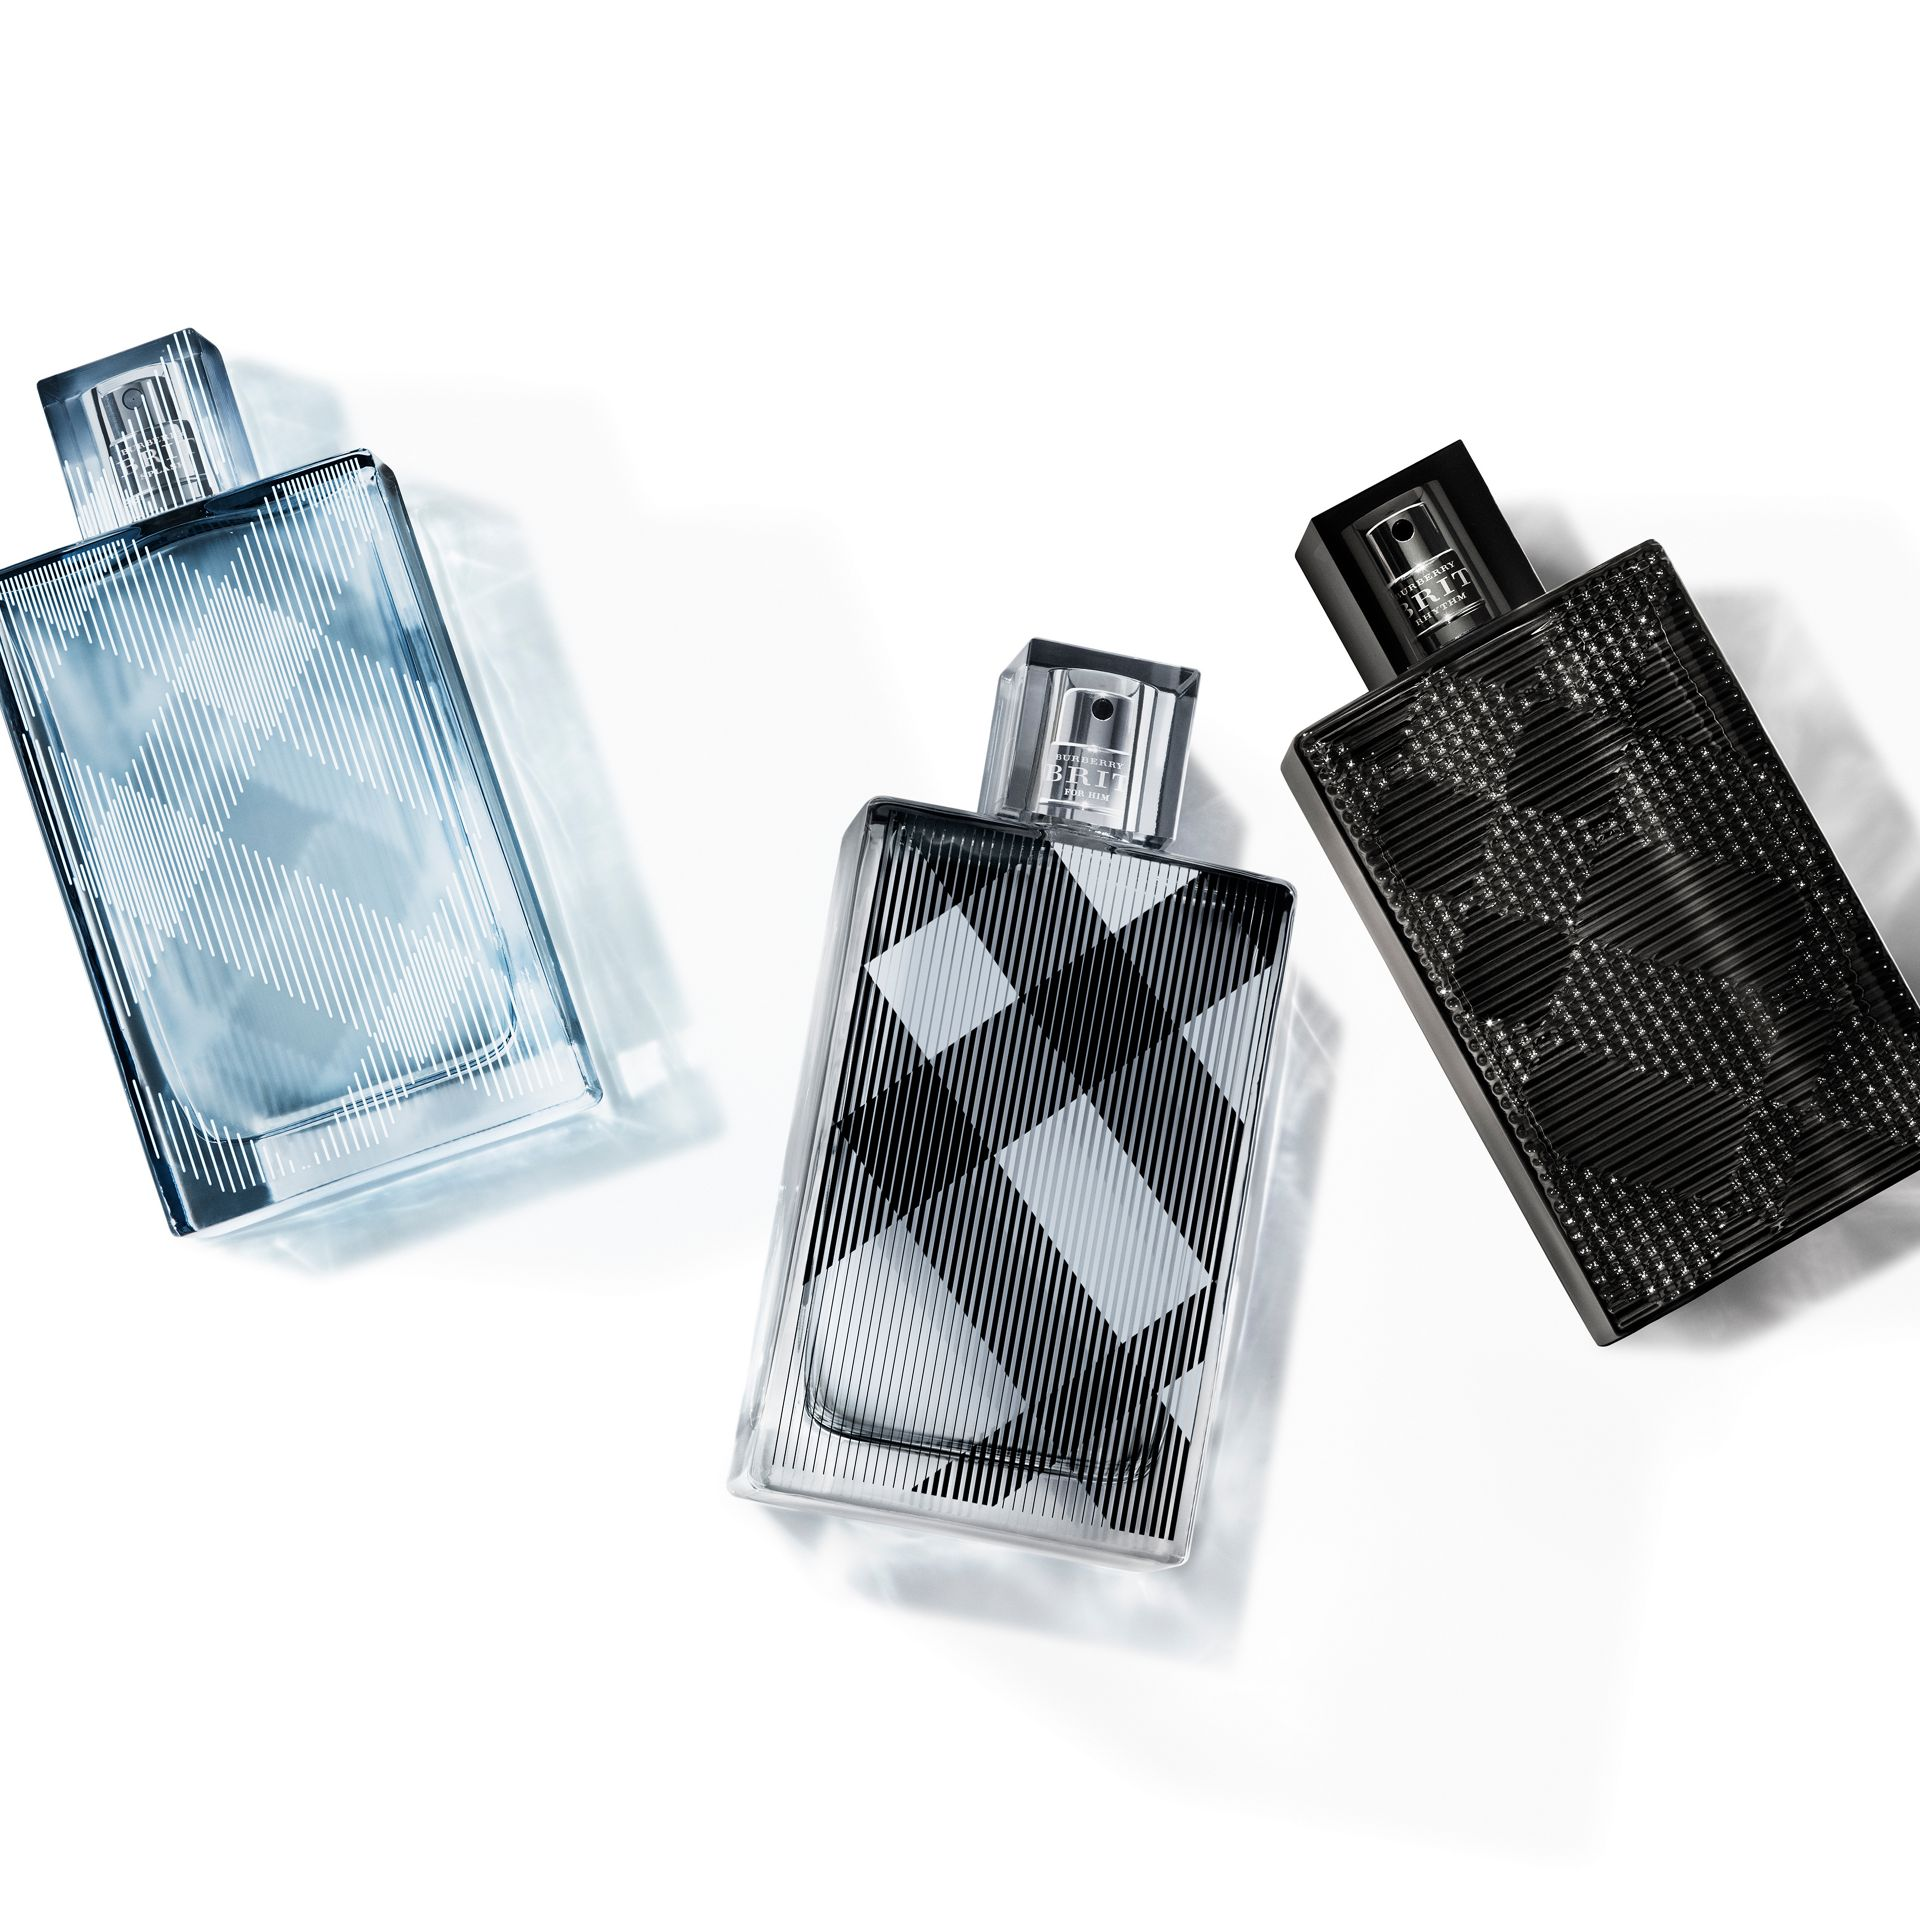 Burberry Brit Splash Eau de Toilette 50 ml - Uomo | Burberry - immagine della galleria 2